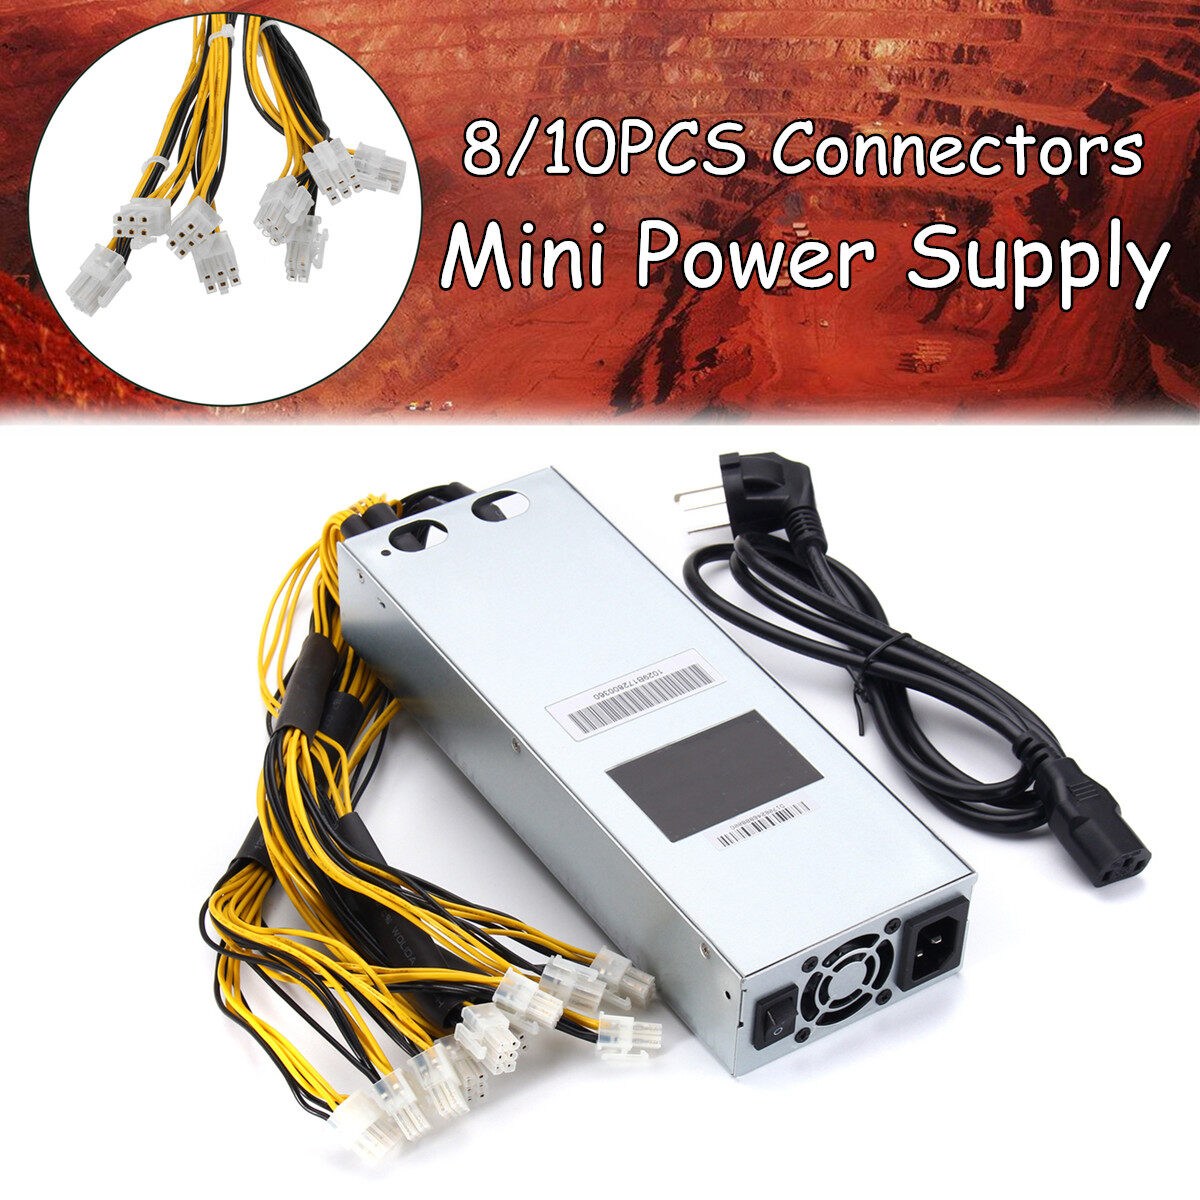 (10PCS Connectors) AntMiner APW3-12-1600 1600W PSU Power Supply For S9 S7 Antminer Full Range Mining Machine